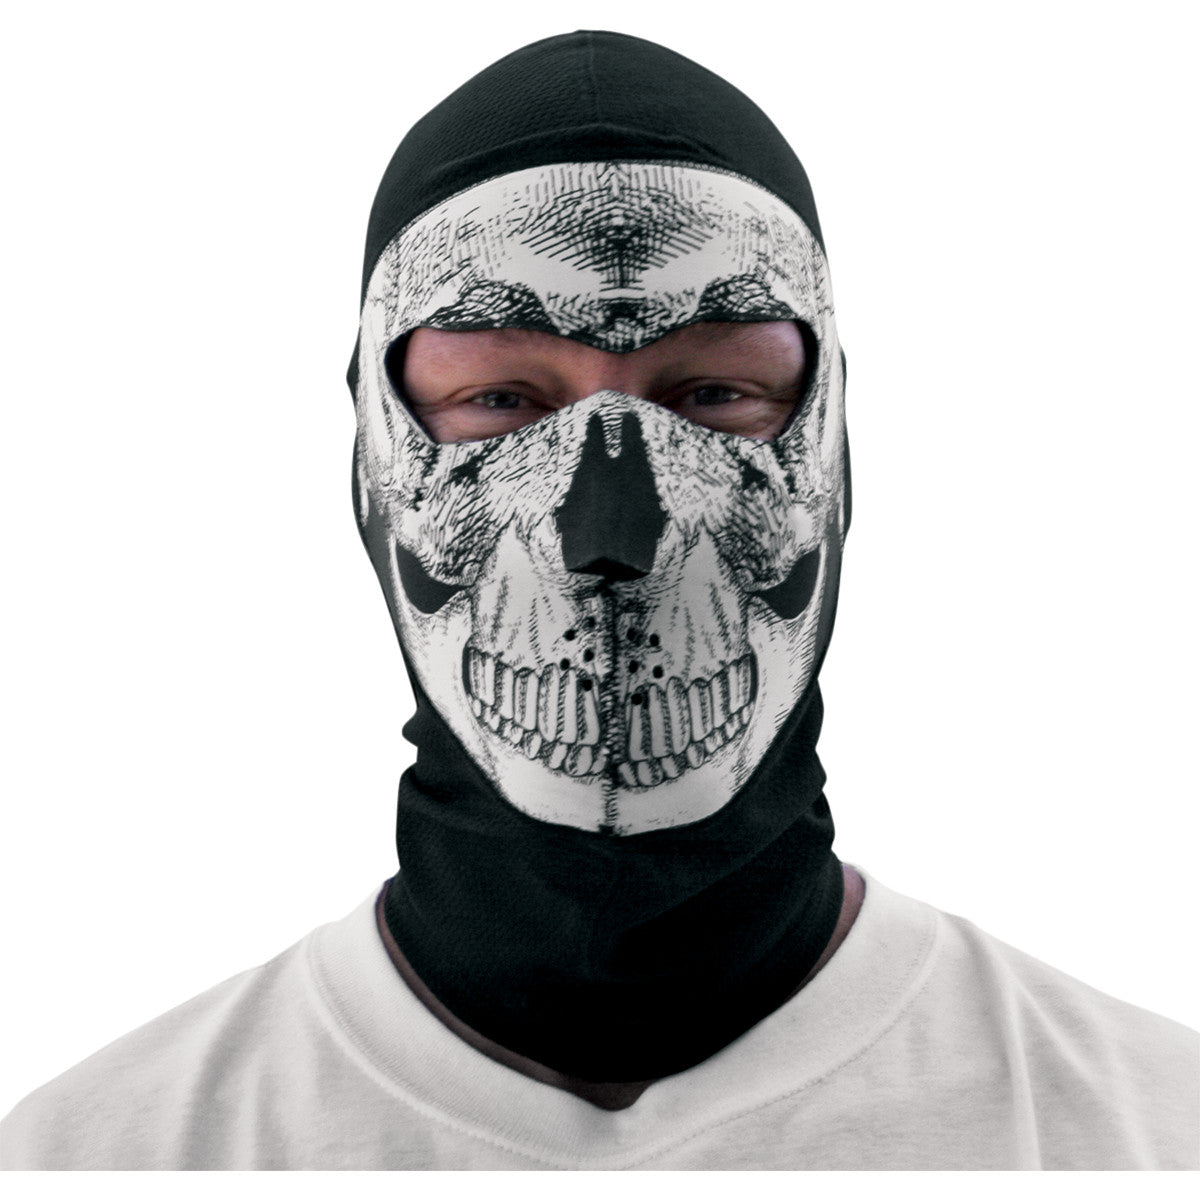 Zan Headgear Coolmax Balaclava With Neoprene Face Mask